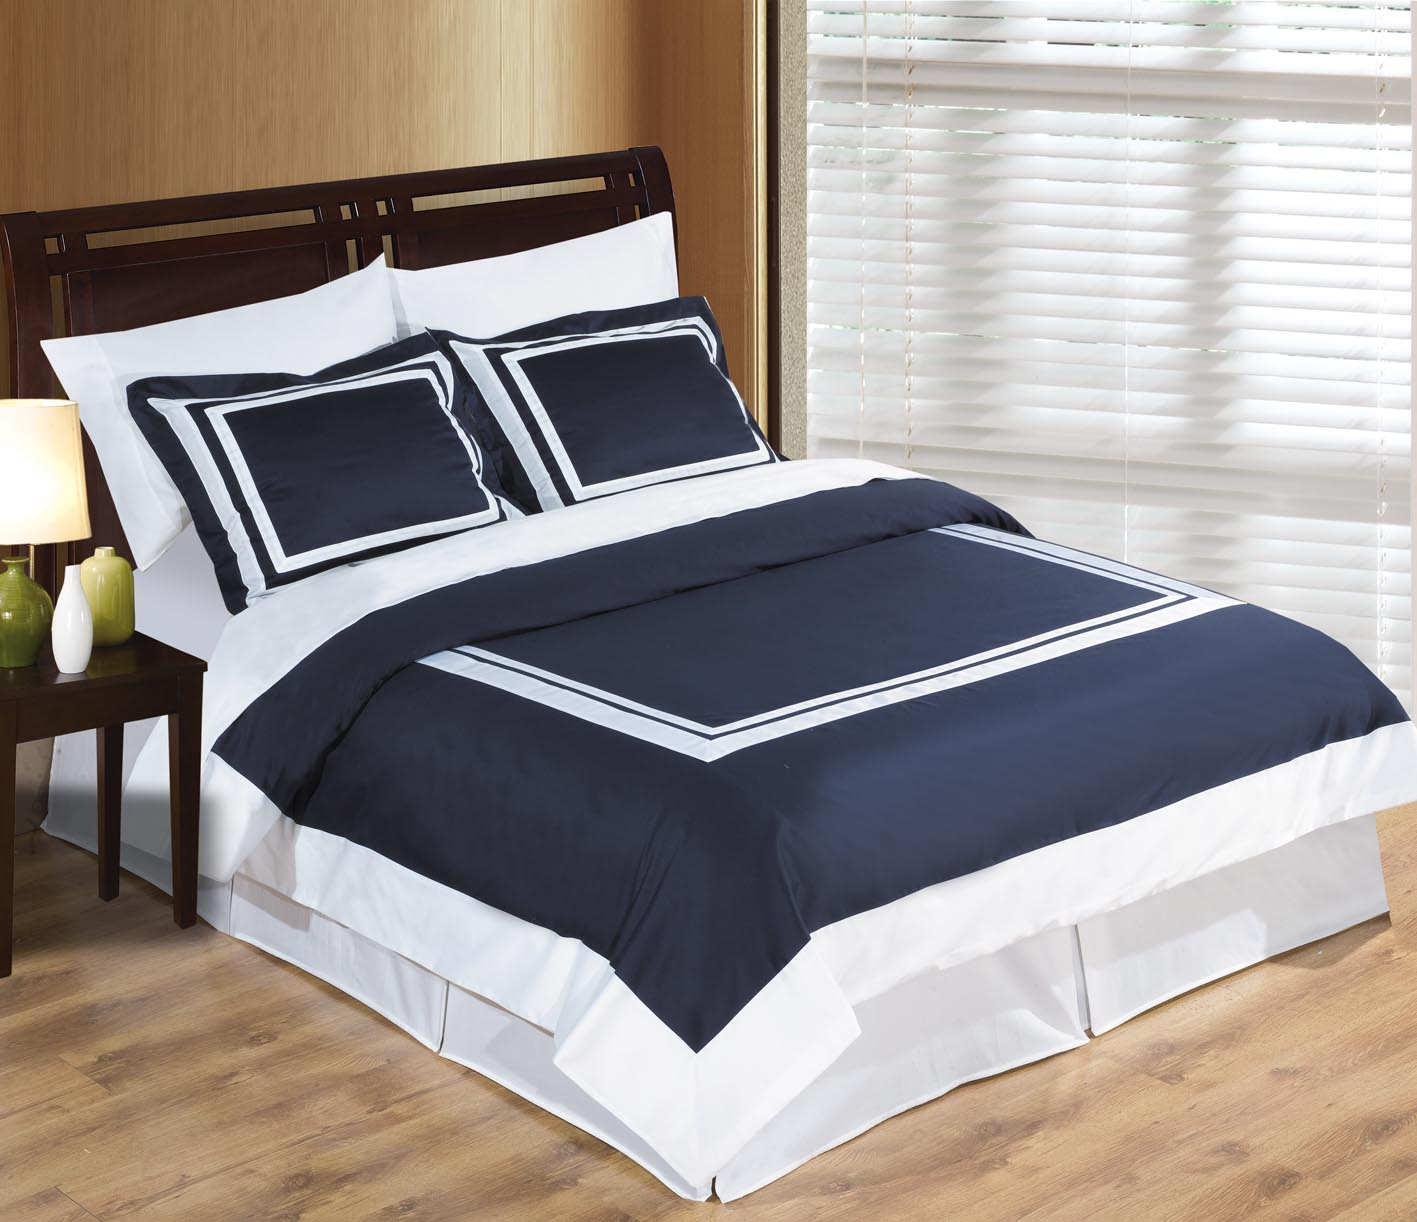 egyptian cotton bed sheets wrinkle resistant egyptian cotton hotel duvet cover sets xwitajz